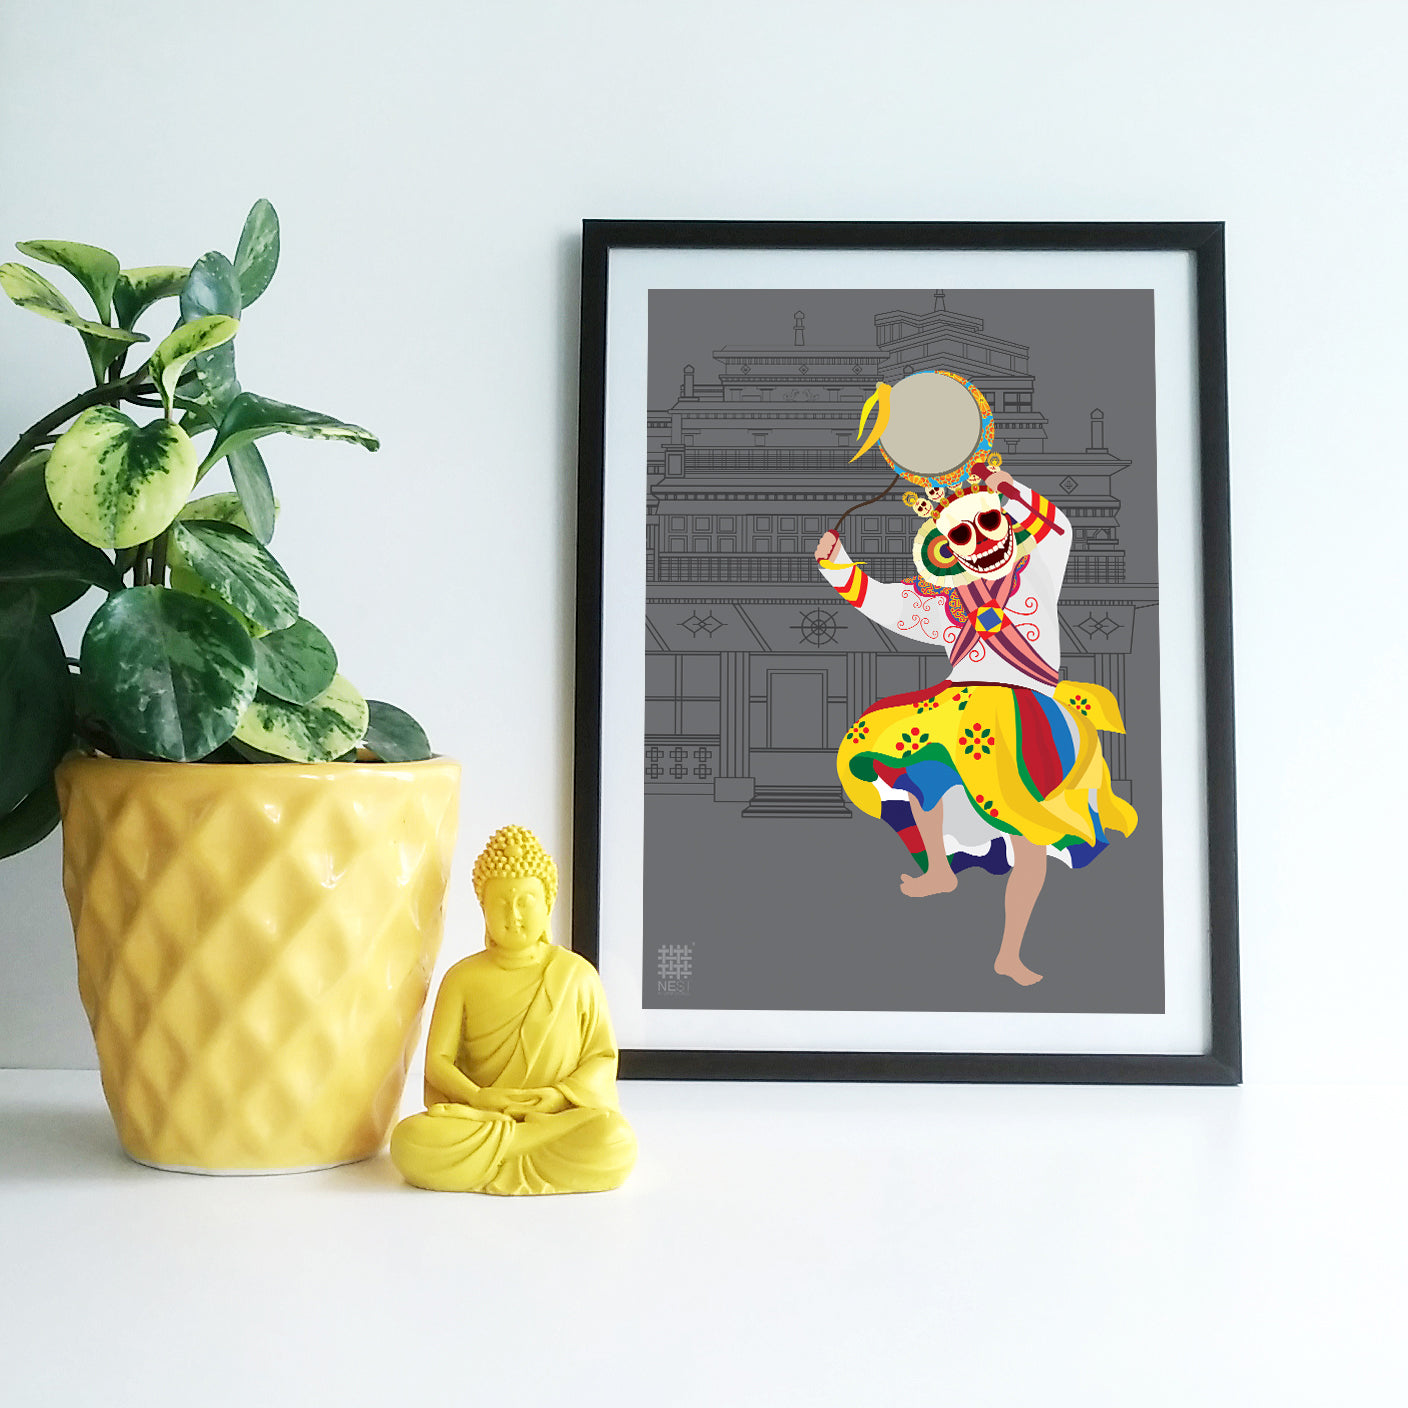 Chaam Dance 3 - Print Only - NEST by Arpit Agarwal